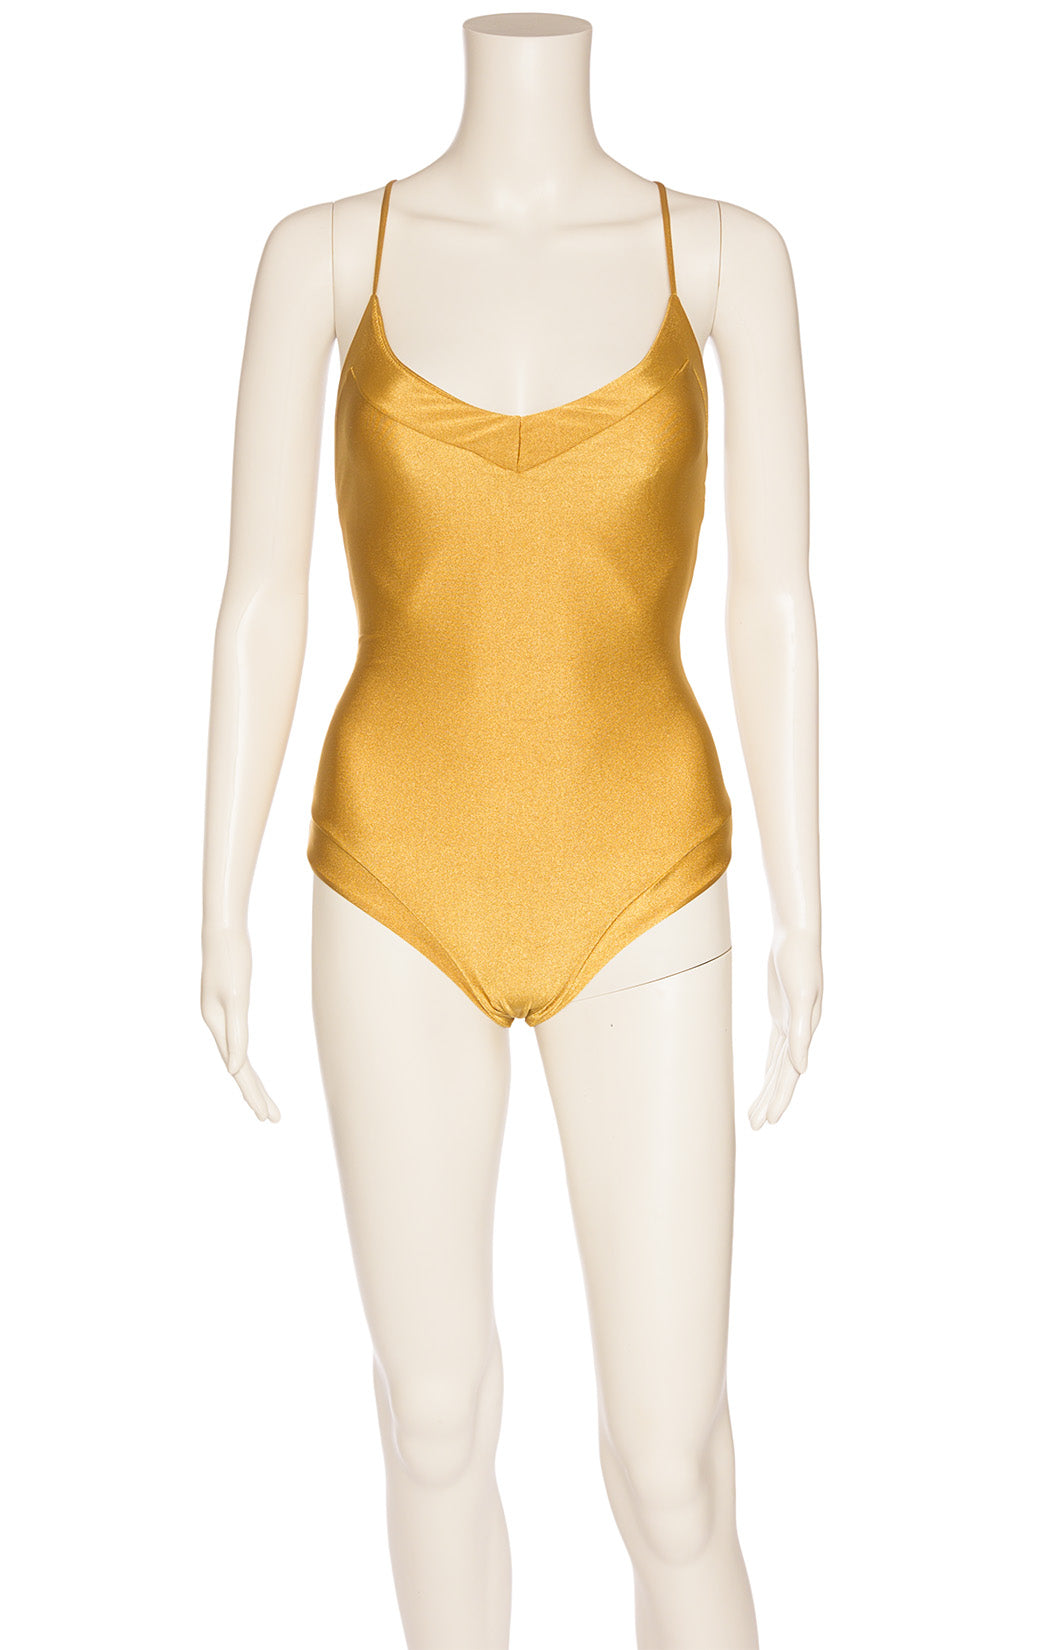 Gold one piece bathing suit with criss cross open back